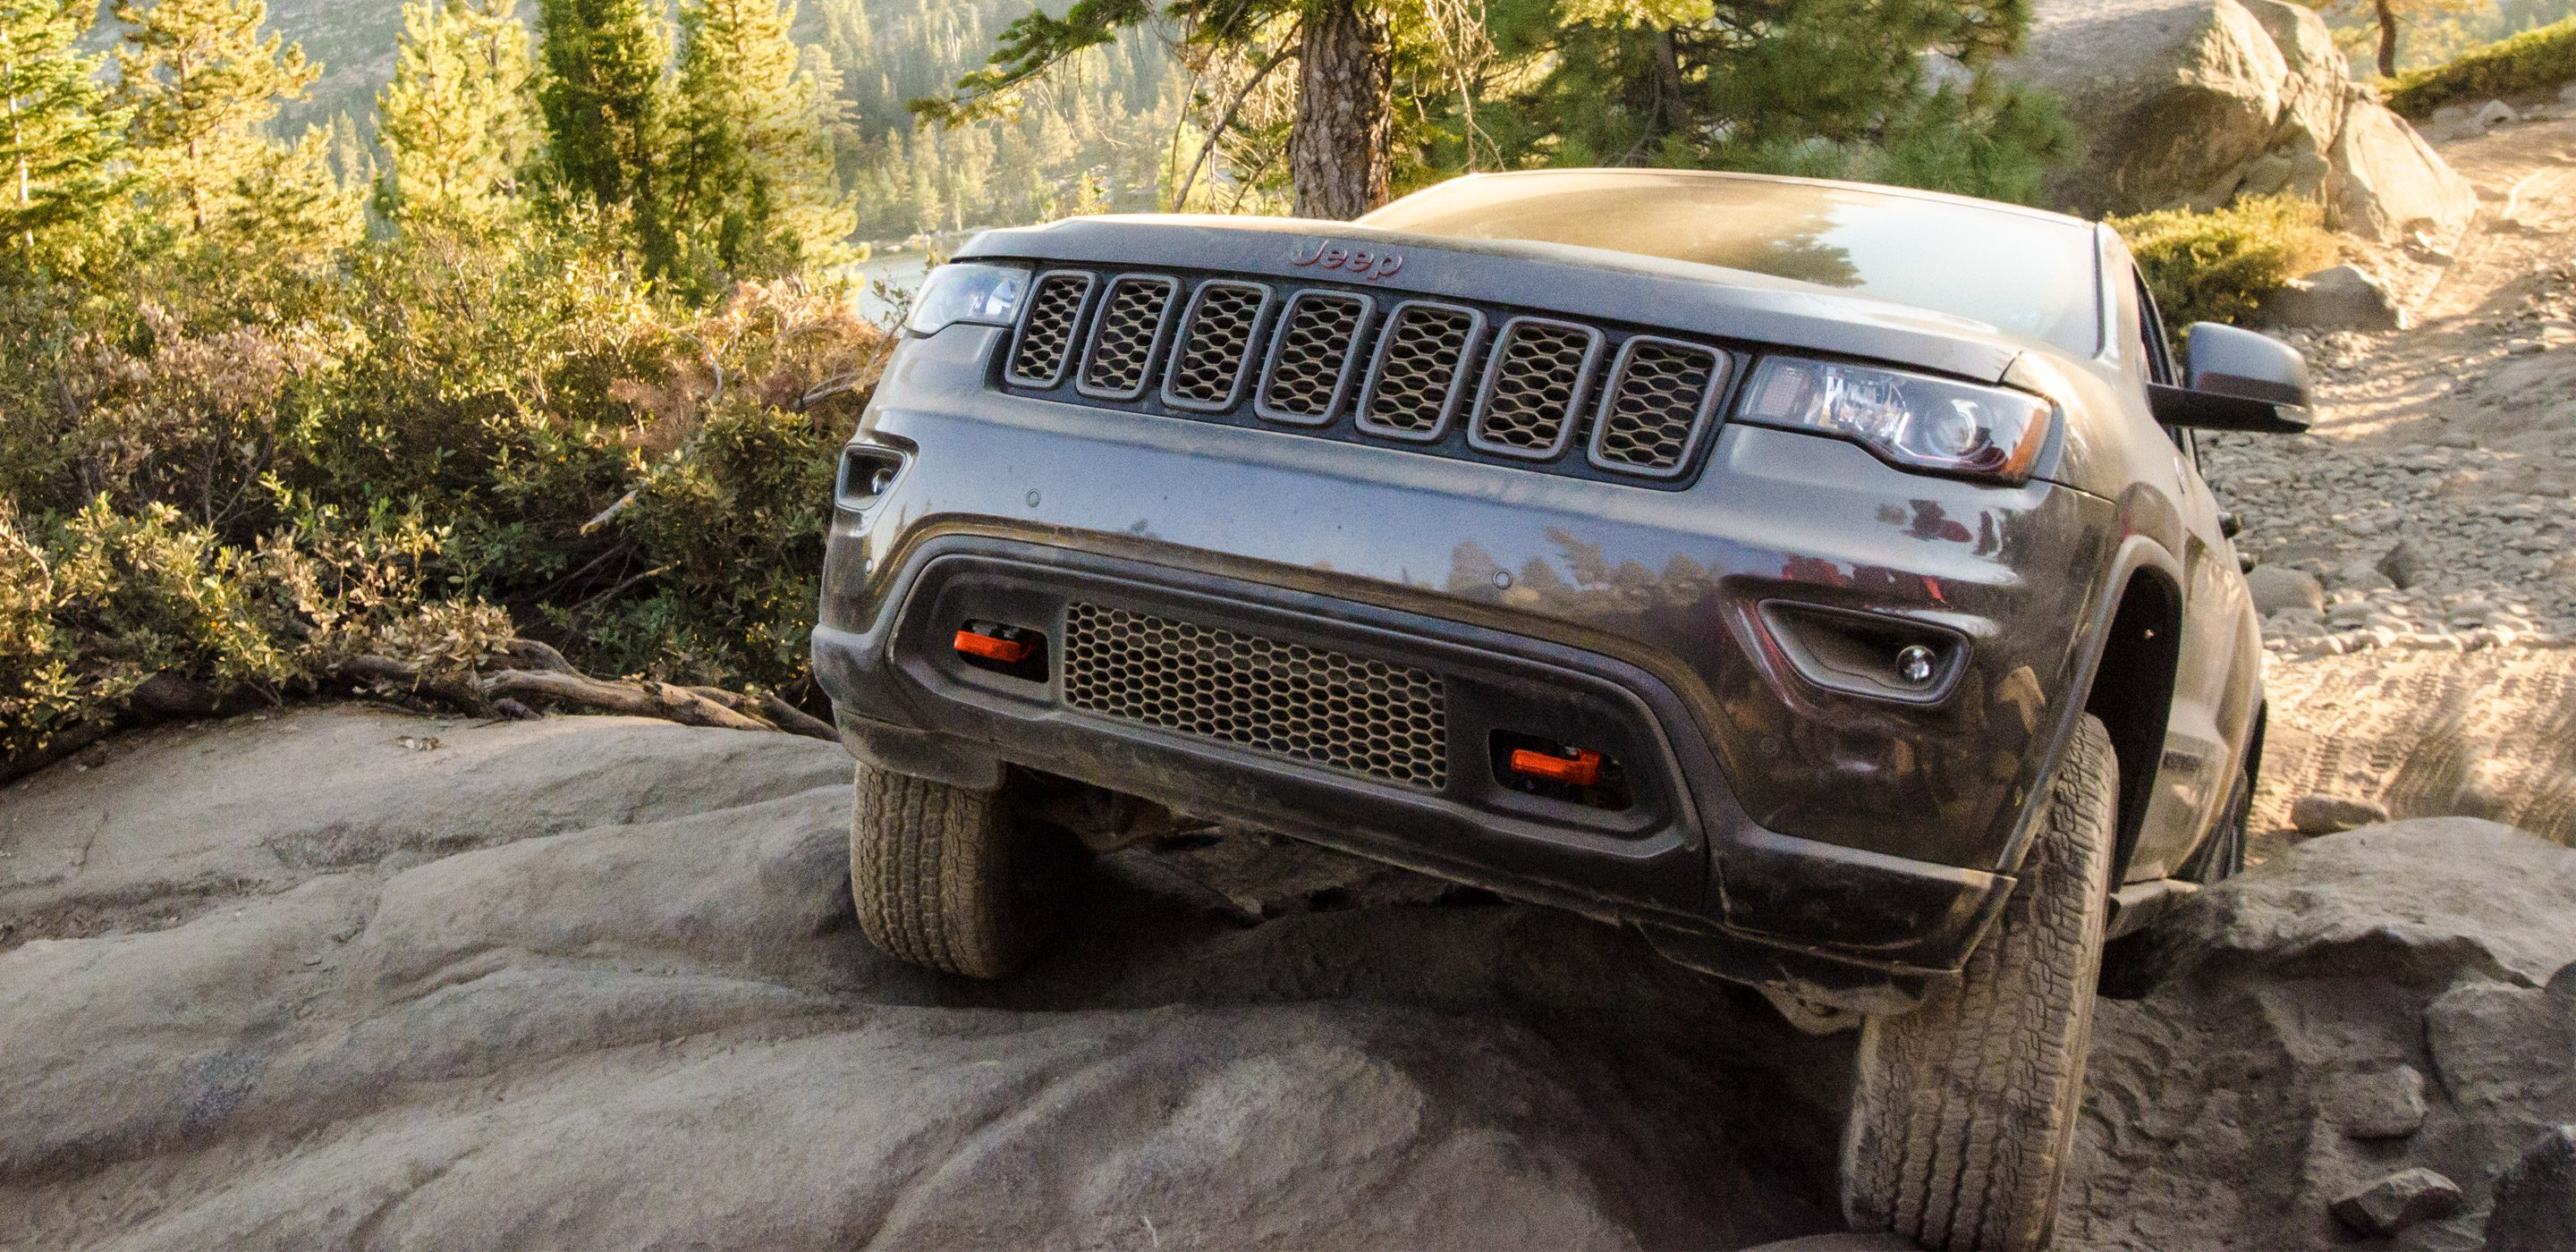 grand cherokee driving emissions jeep diesel in resolve issues s files fix u summit news effort auto to fca